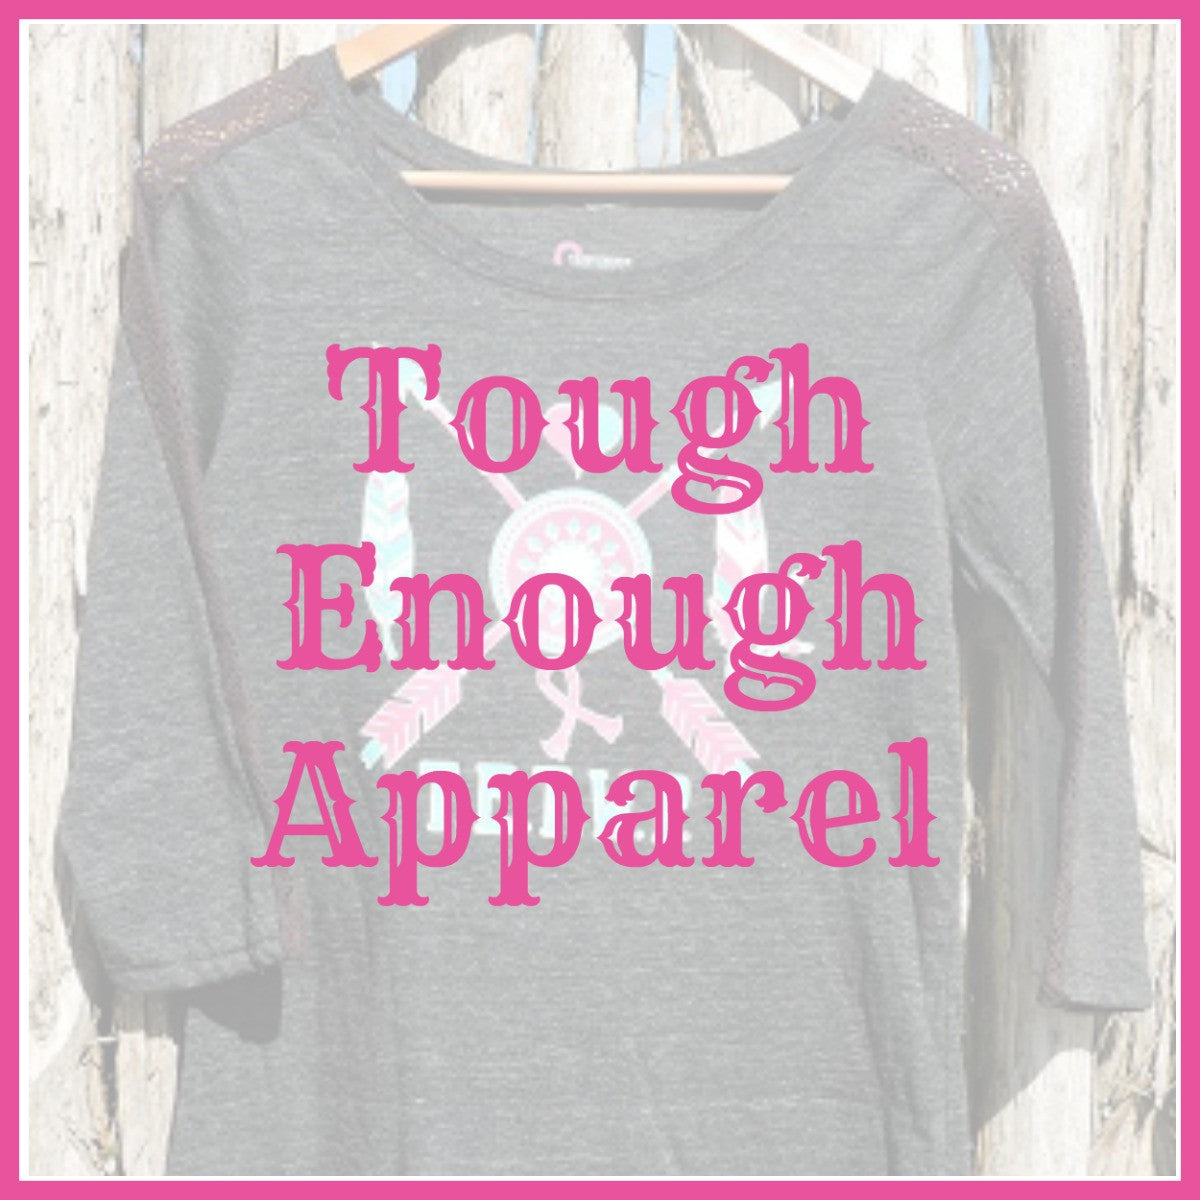 Tough Enough Apparel